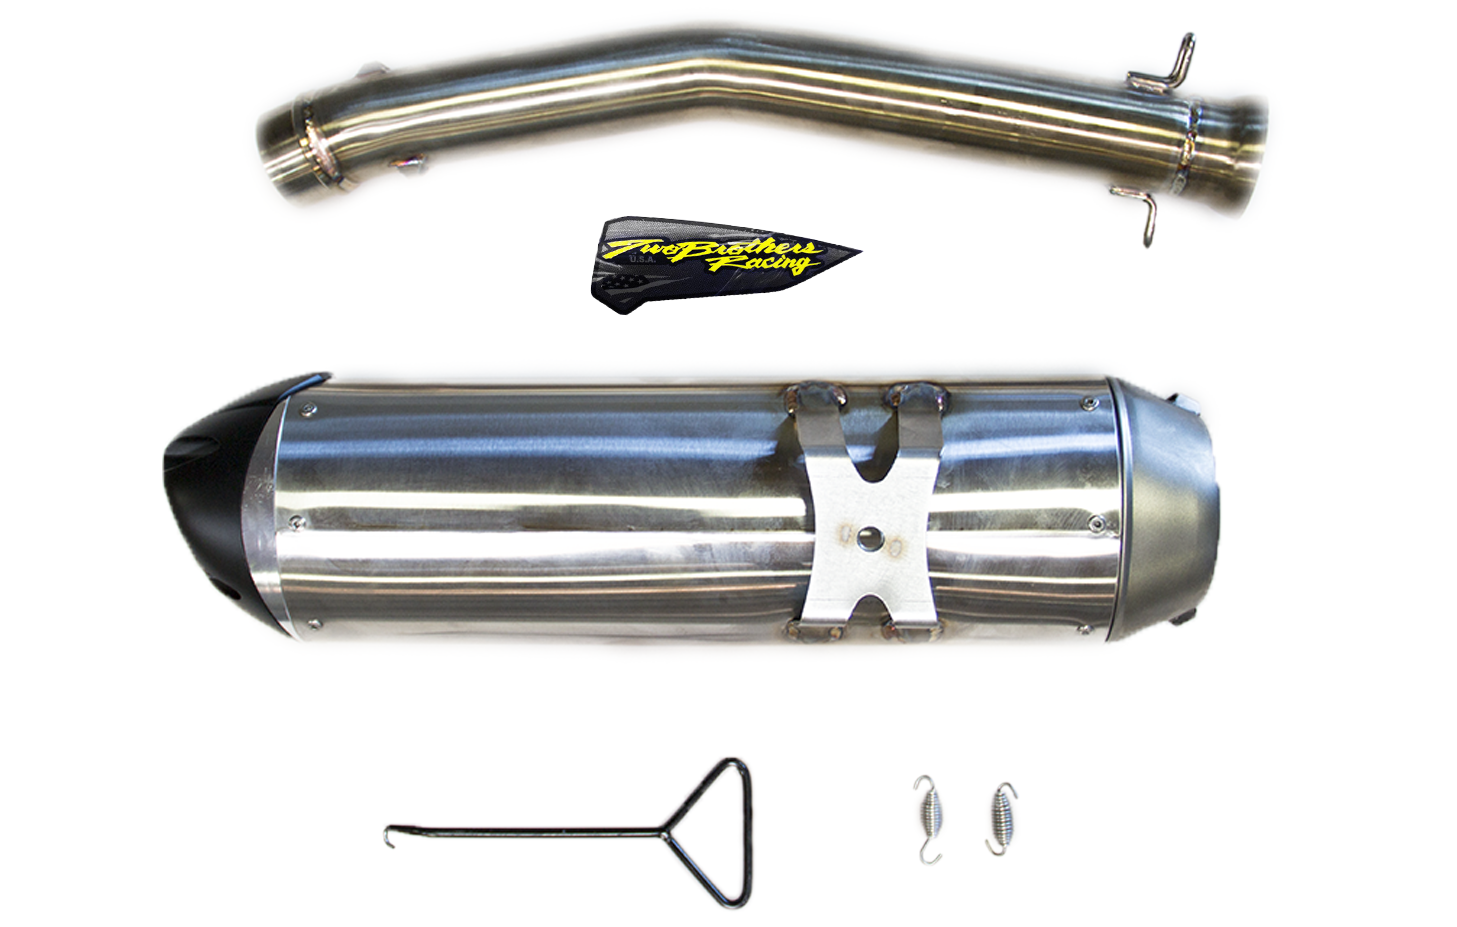 Two Brothers Racing Introduces The 2019 Can-Am Ryker S1R Slip-On Exhaust.